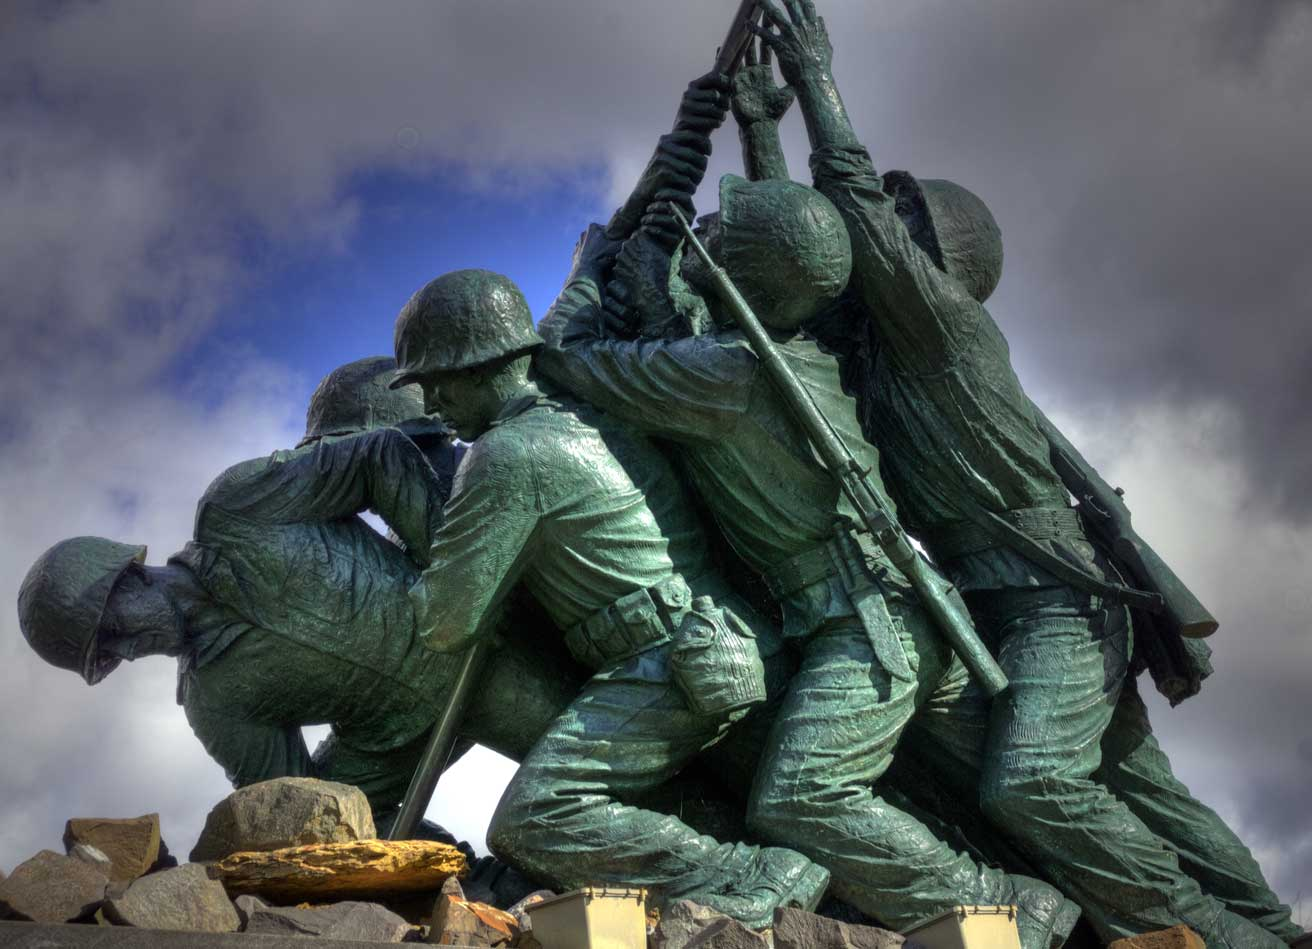 The National Iwo Jima Memorial Monument and Park